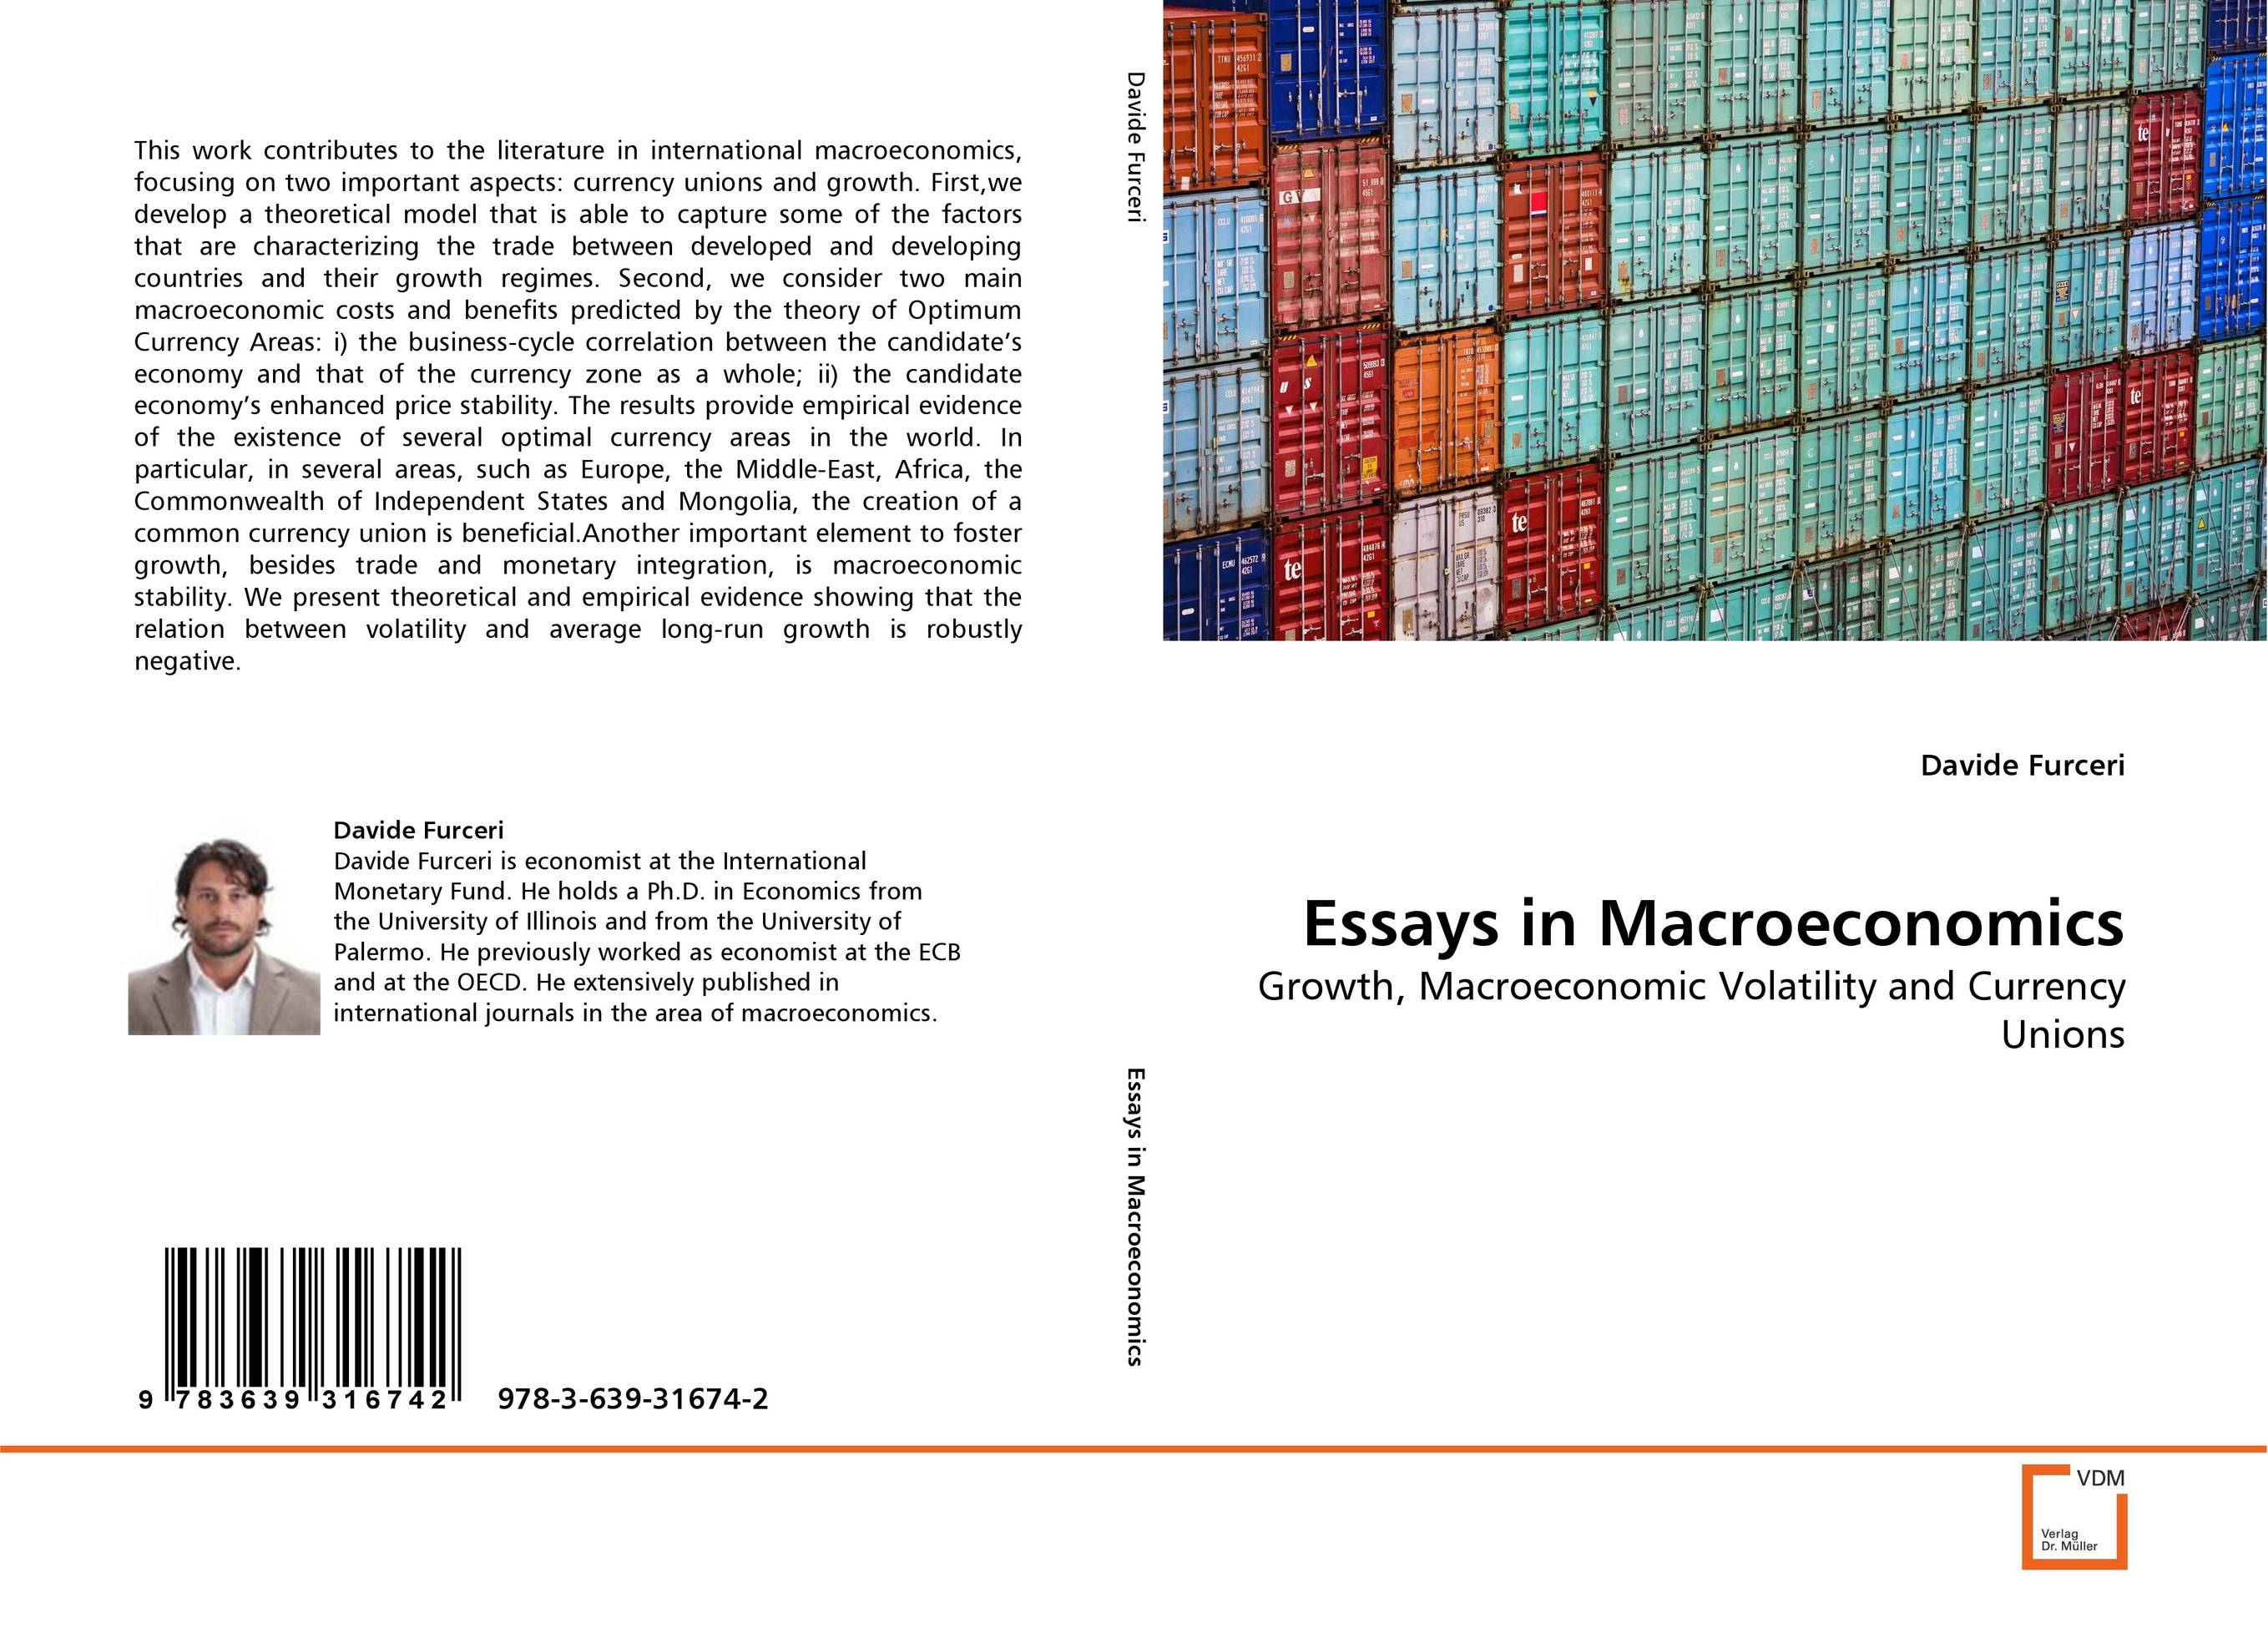 Essays in Macroeconomics rakesh kumar tiwari and rajendra prasad ojha conformation and stability of mixed dna triplex